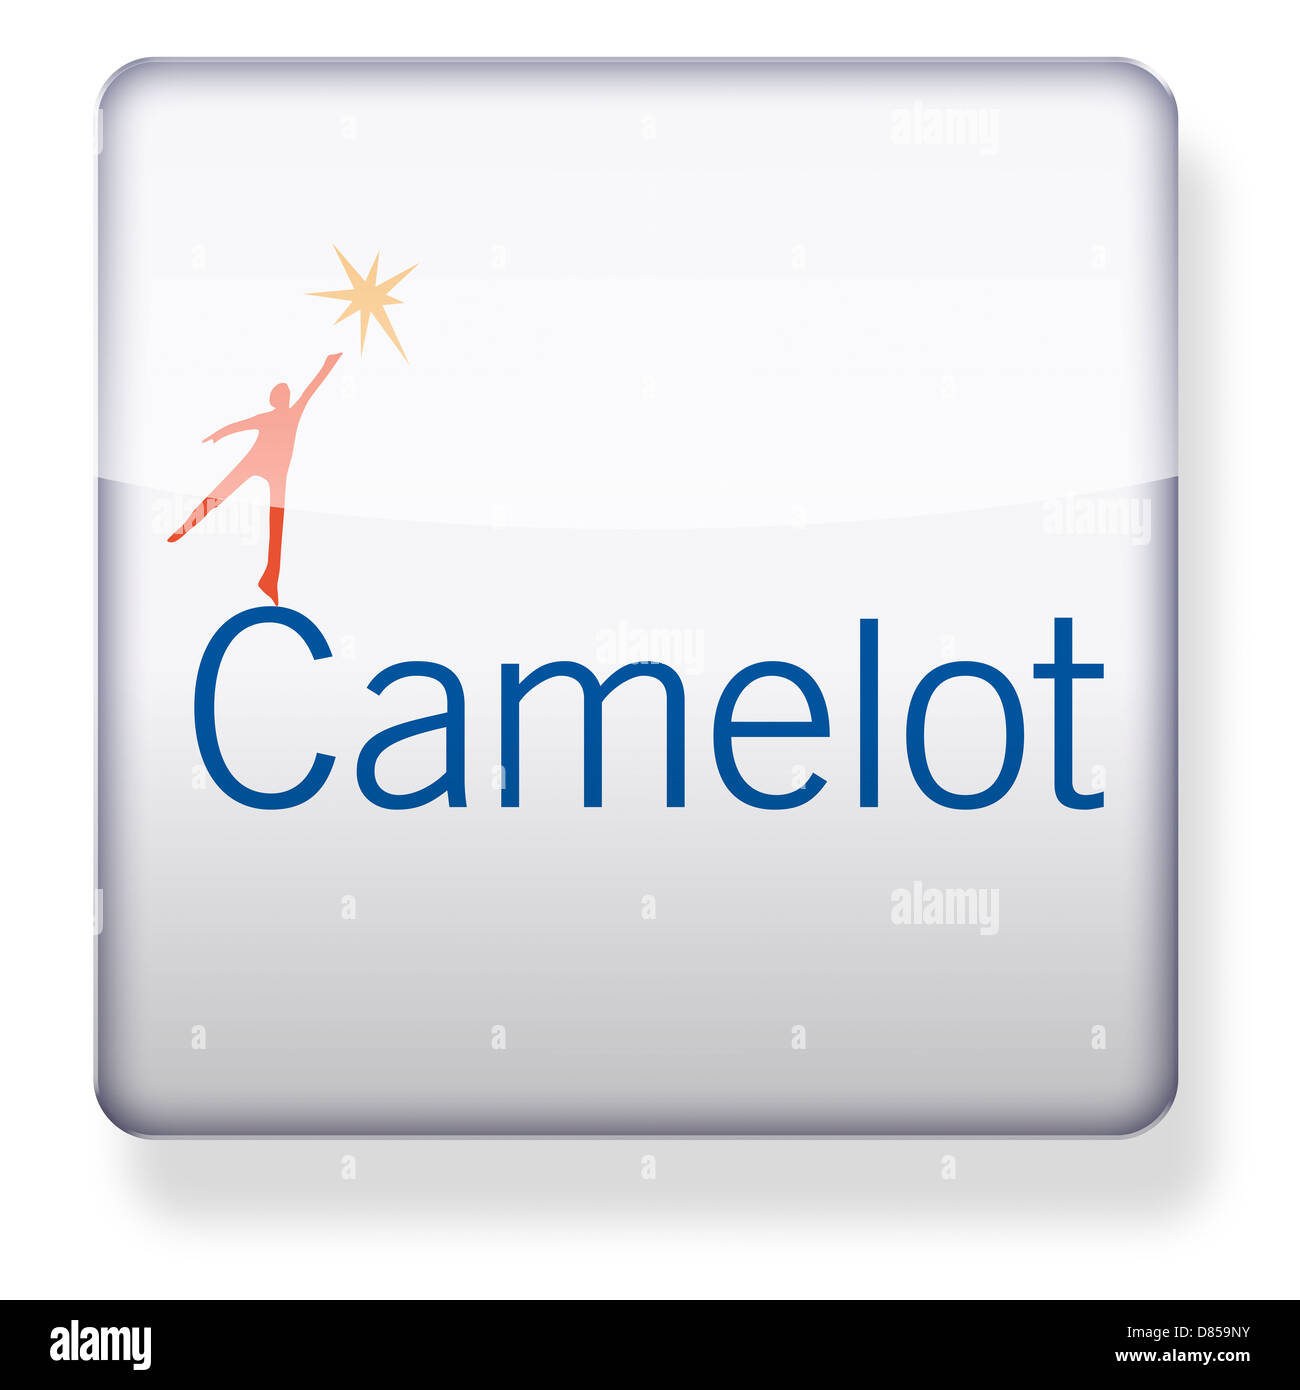 Camelot Group Stock Photos & Camelot Group Stock Images - Alamy